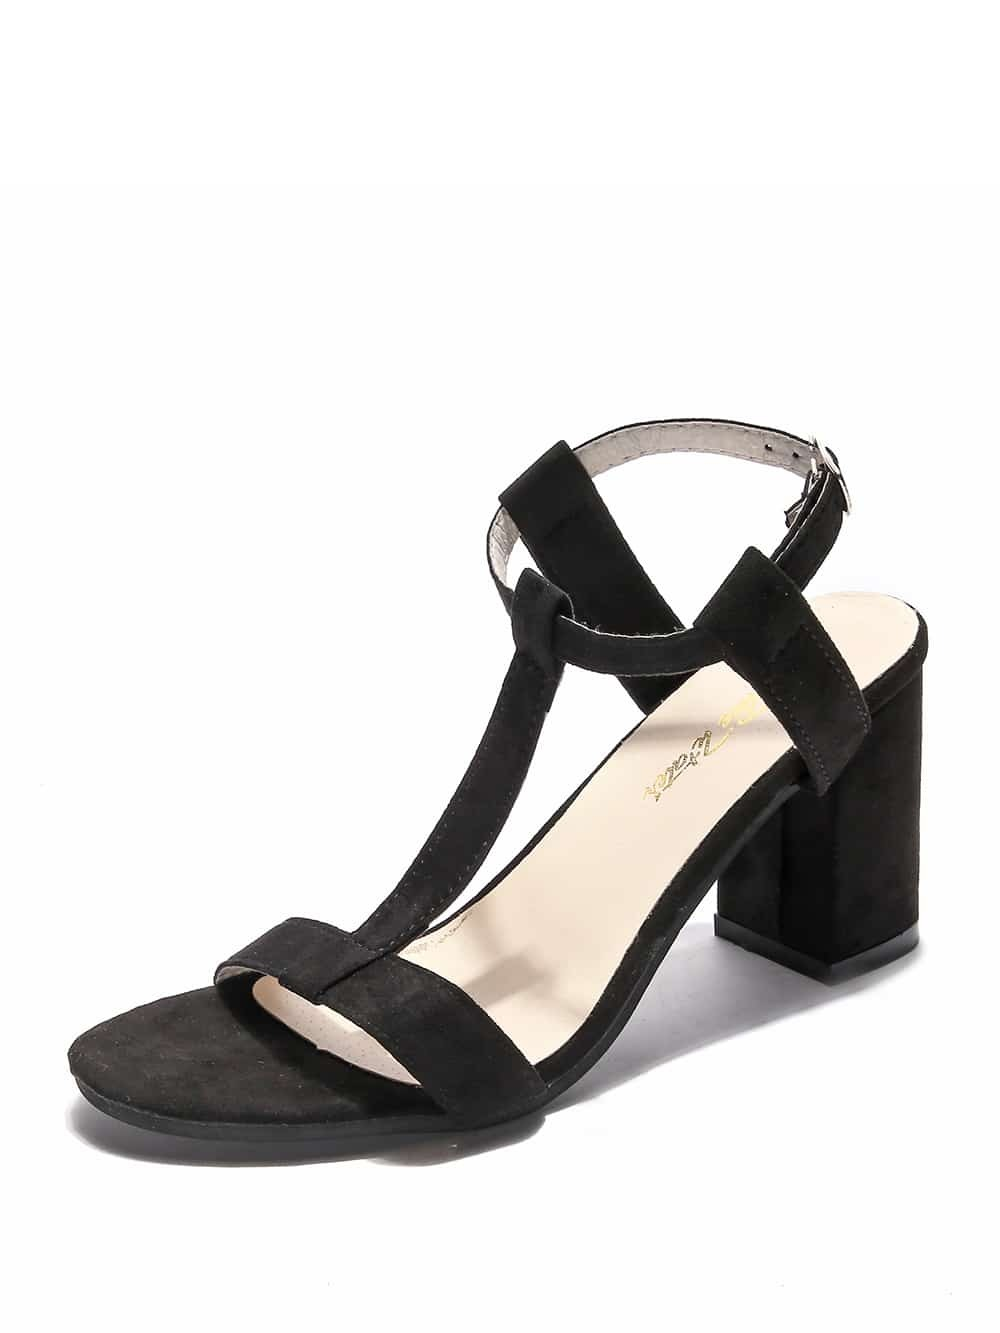 949bf08e931b Strappy Design Block Heeled Sandals EmmaCloth-Women Fast Fashion Online